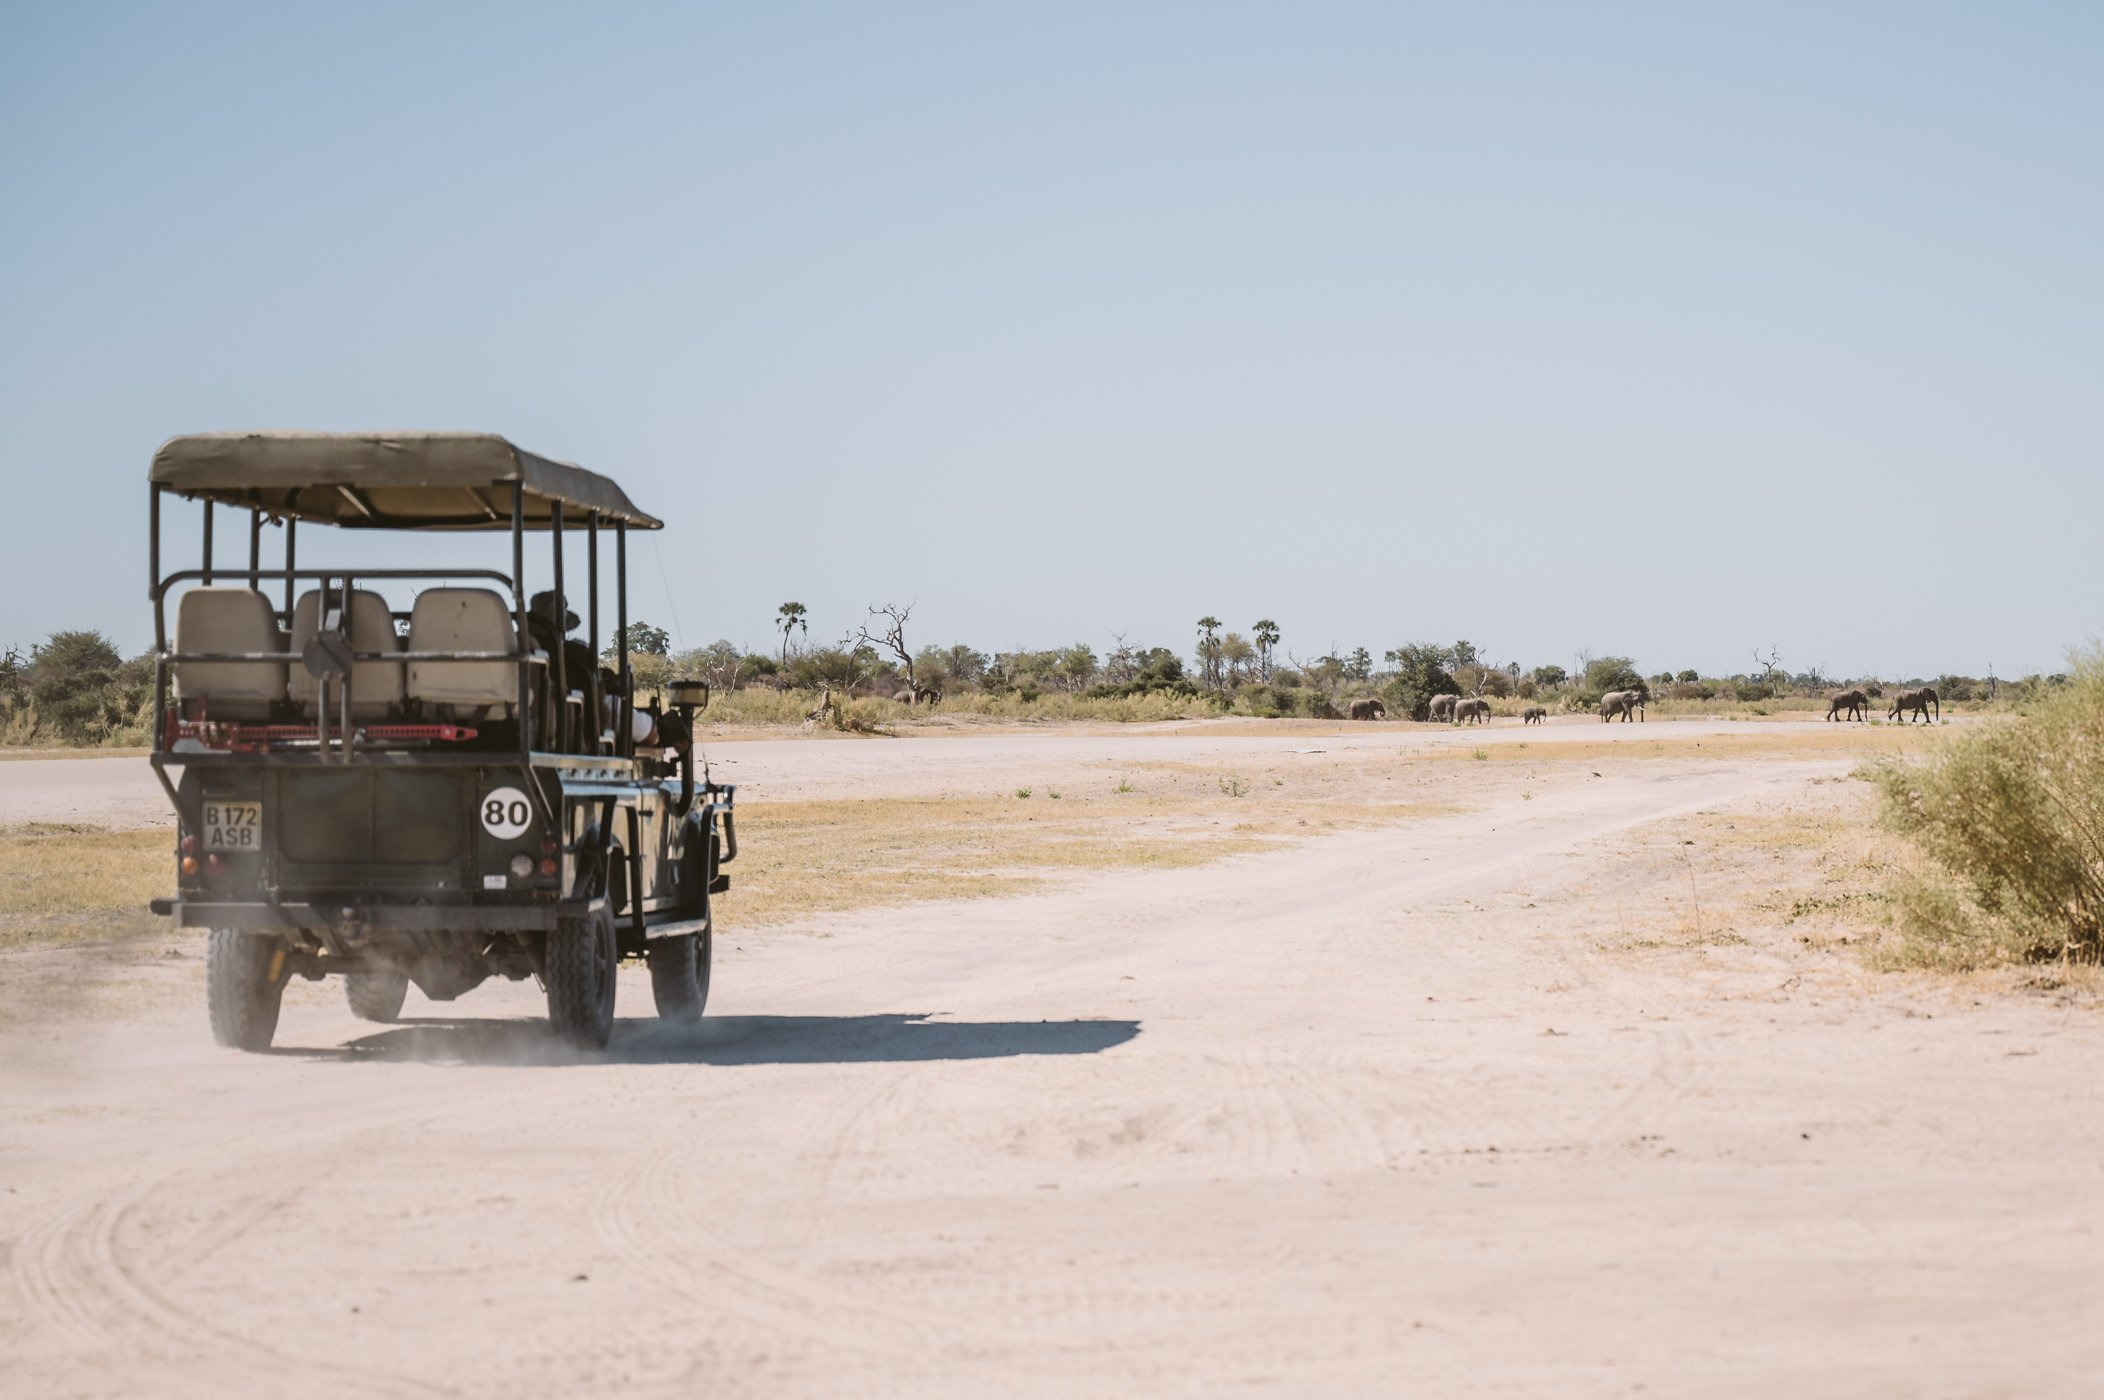 Elephants crossing the airstrip in Botswana at Sandibe